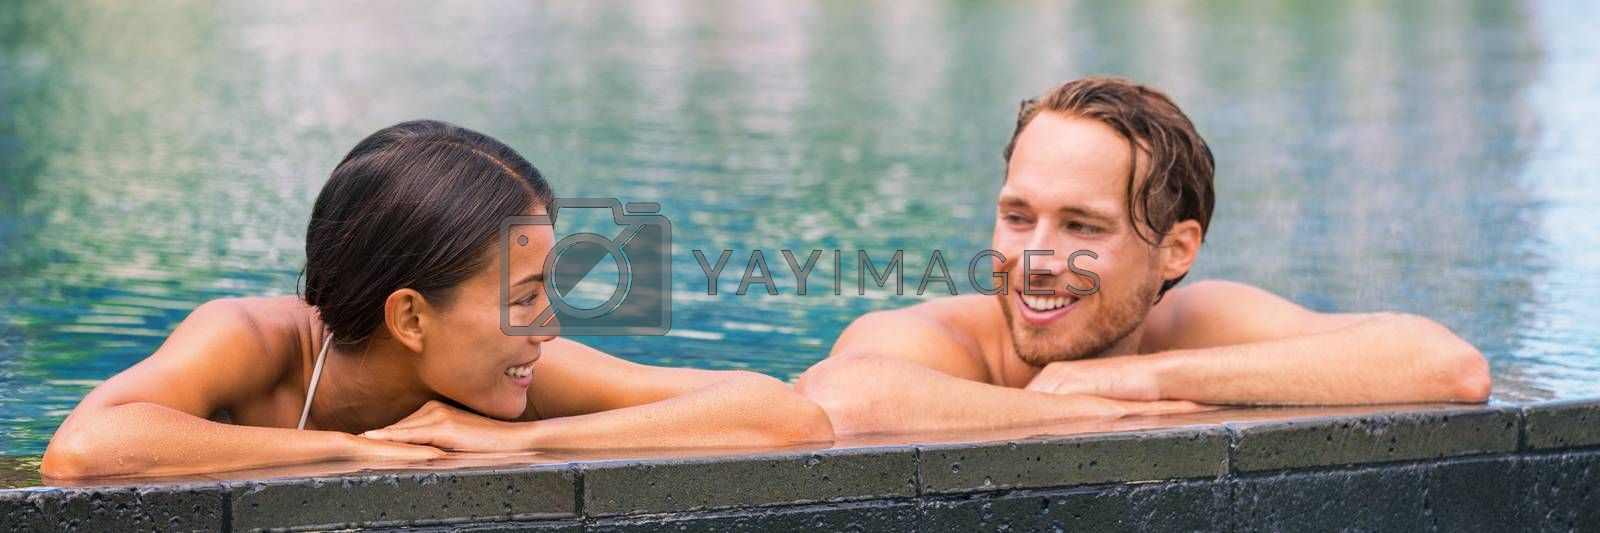 Wellness spa pool couple relaxing in hydrotherapy luxury travel resort on tropical holidays together enjoying the swim in water. Banner panorama. Hotel swimming pool.